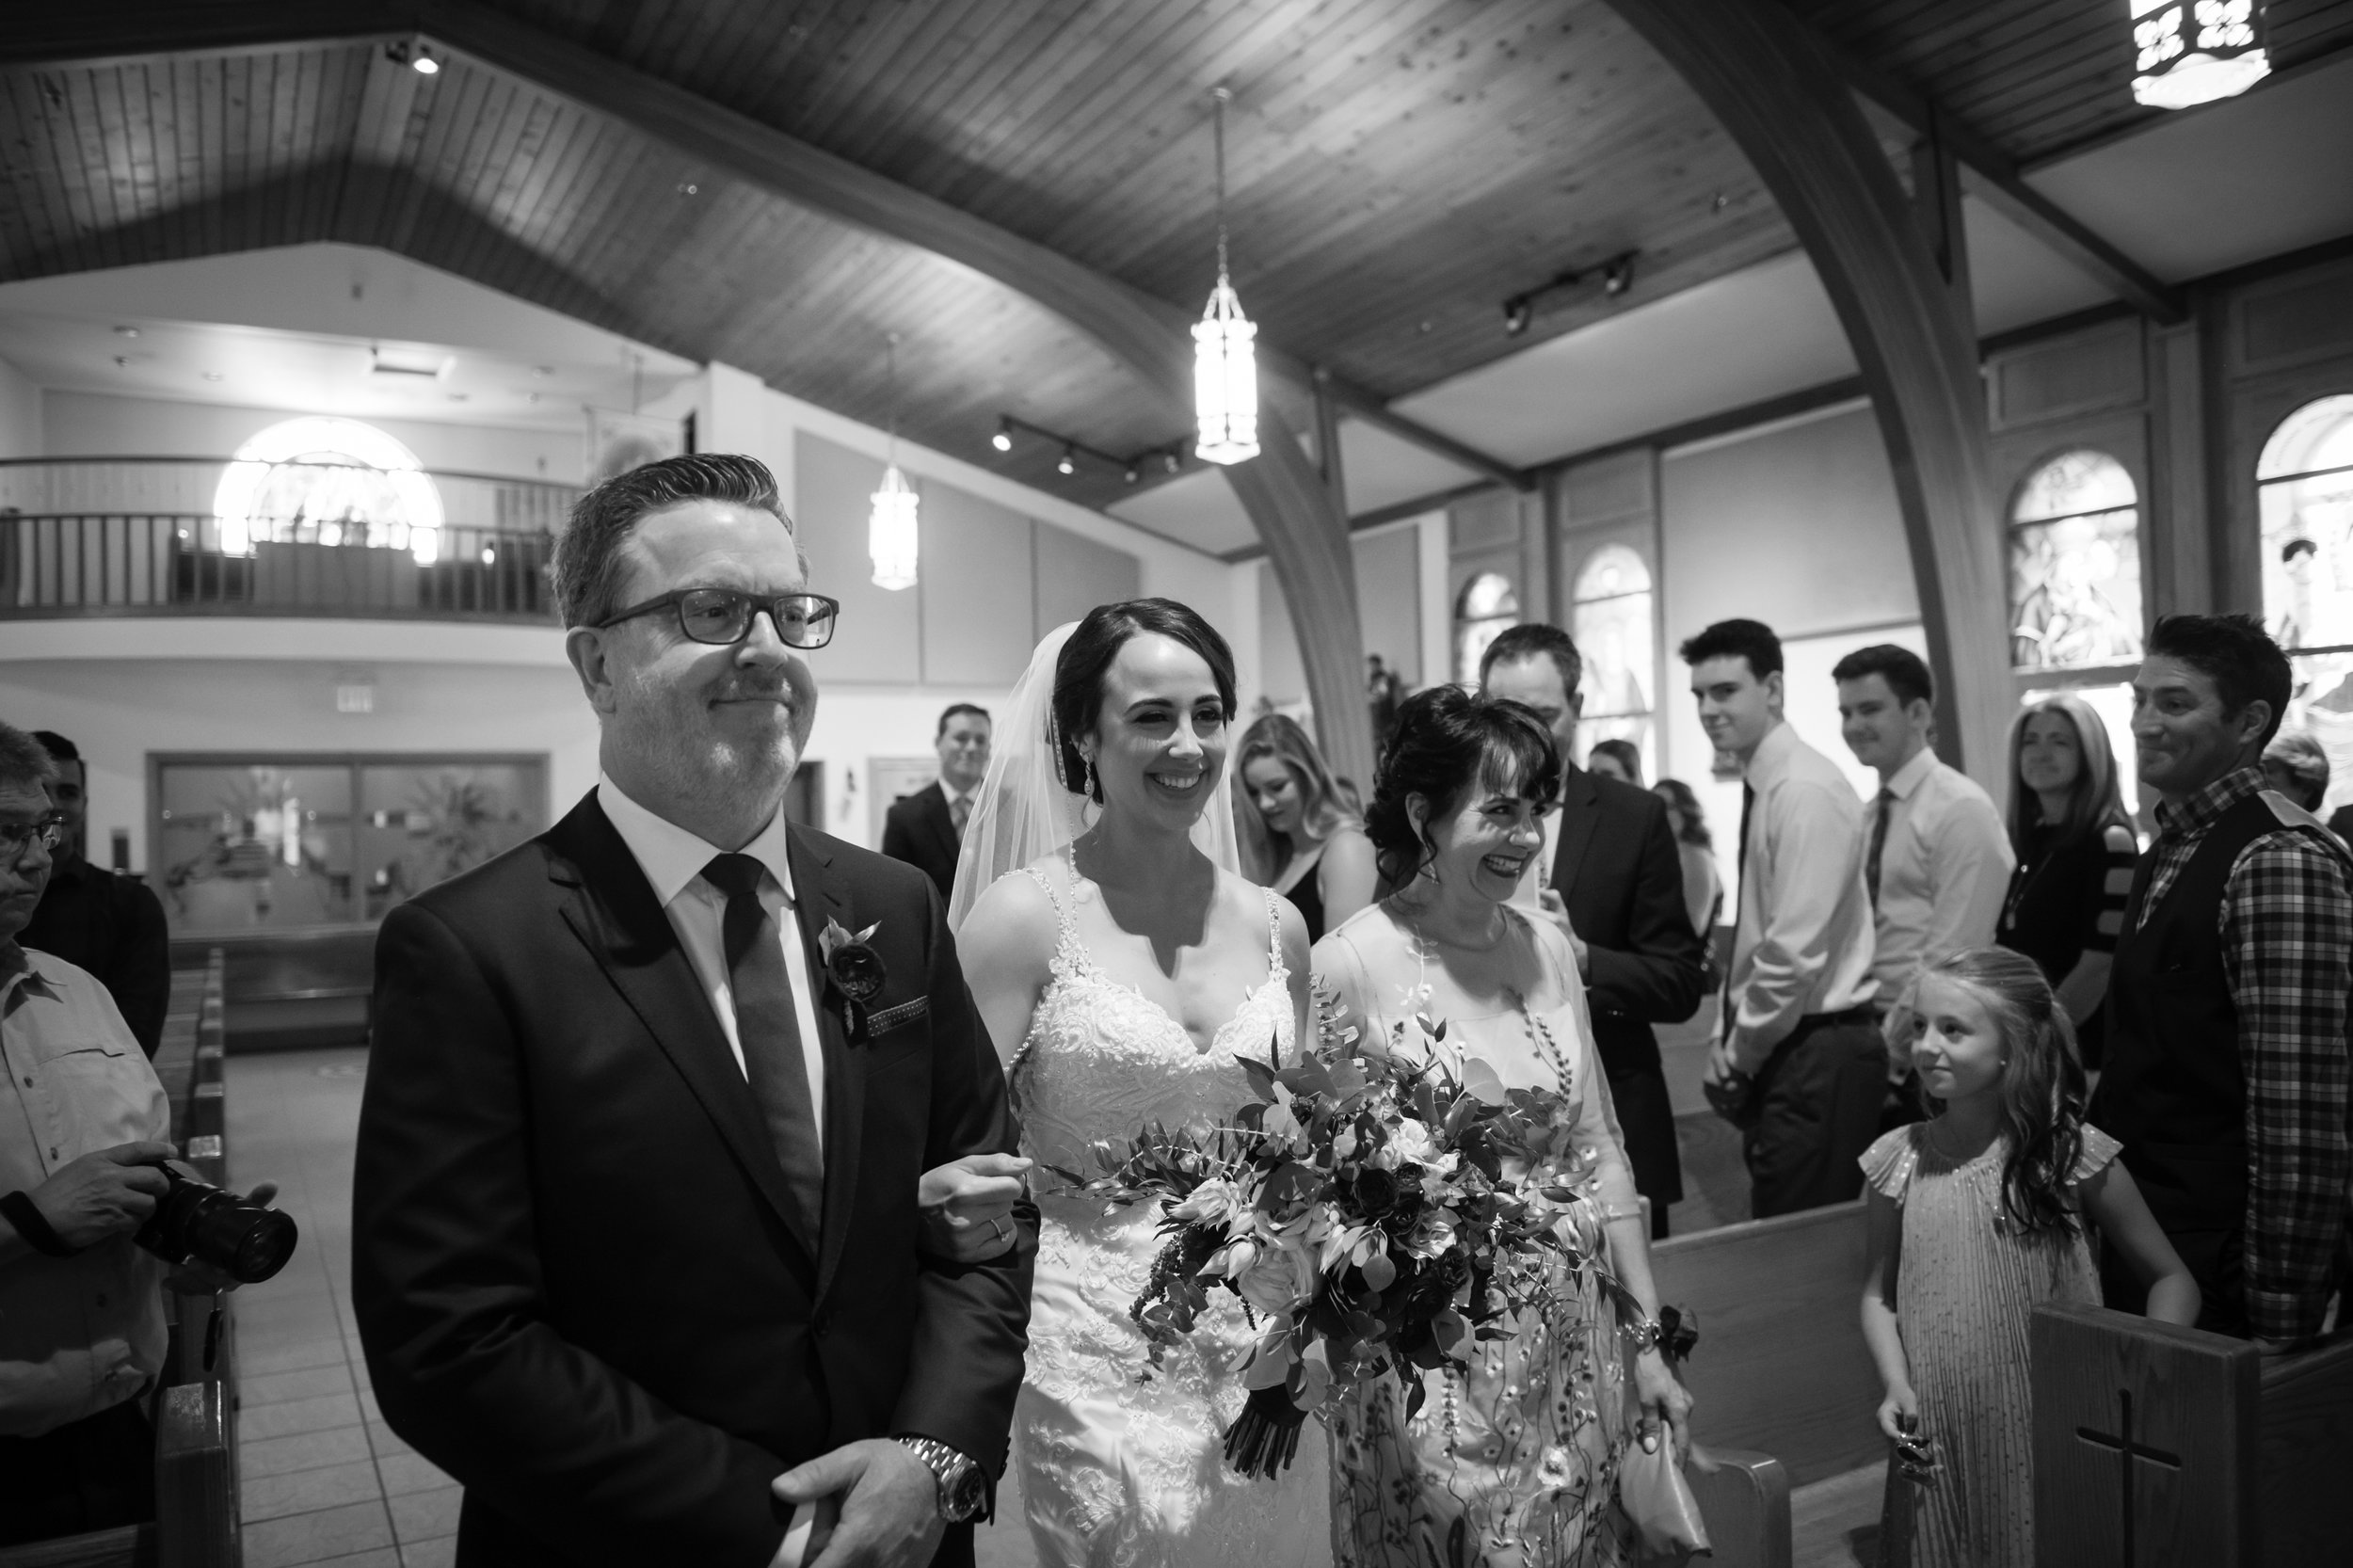 Laura_Danny_Wedding_Sneak_Peek_025.jpg